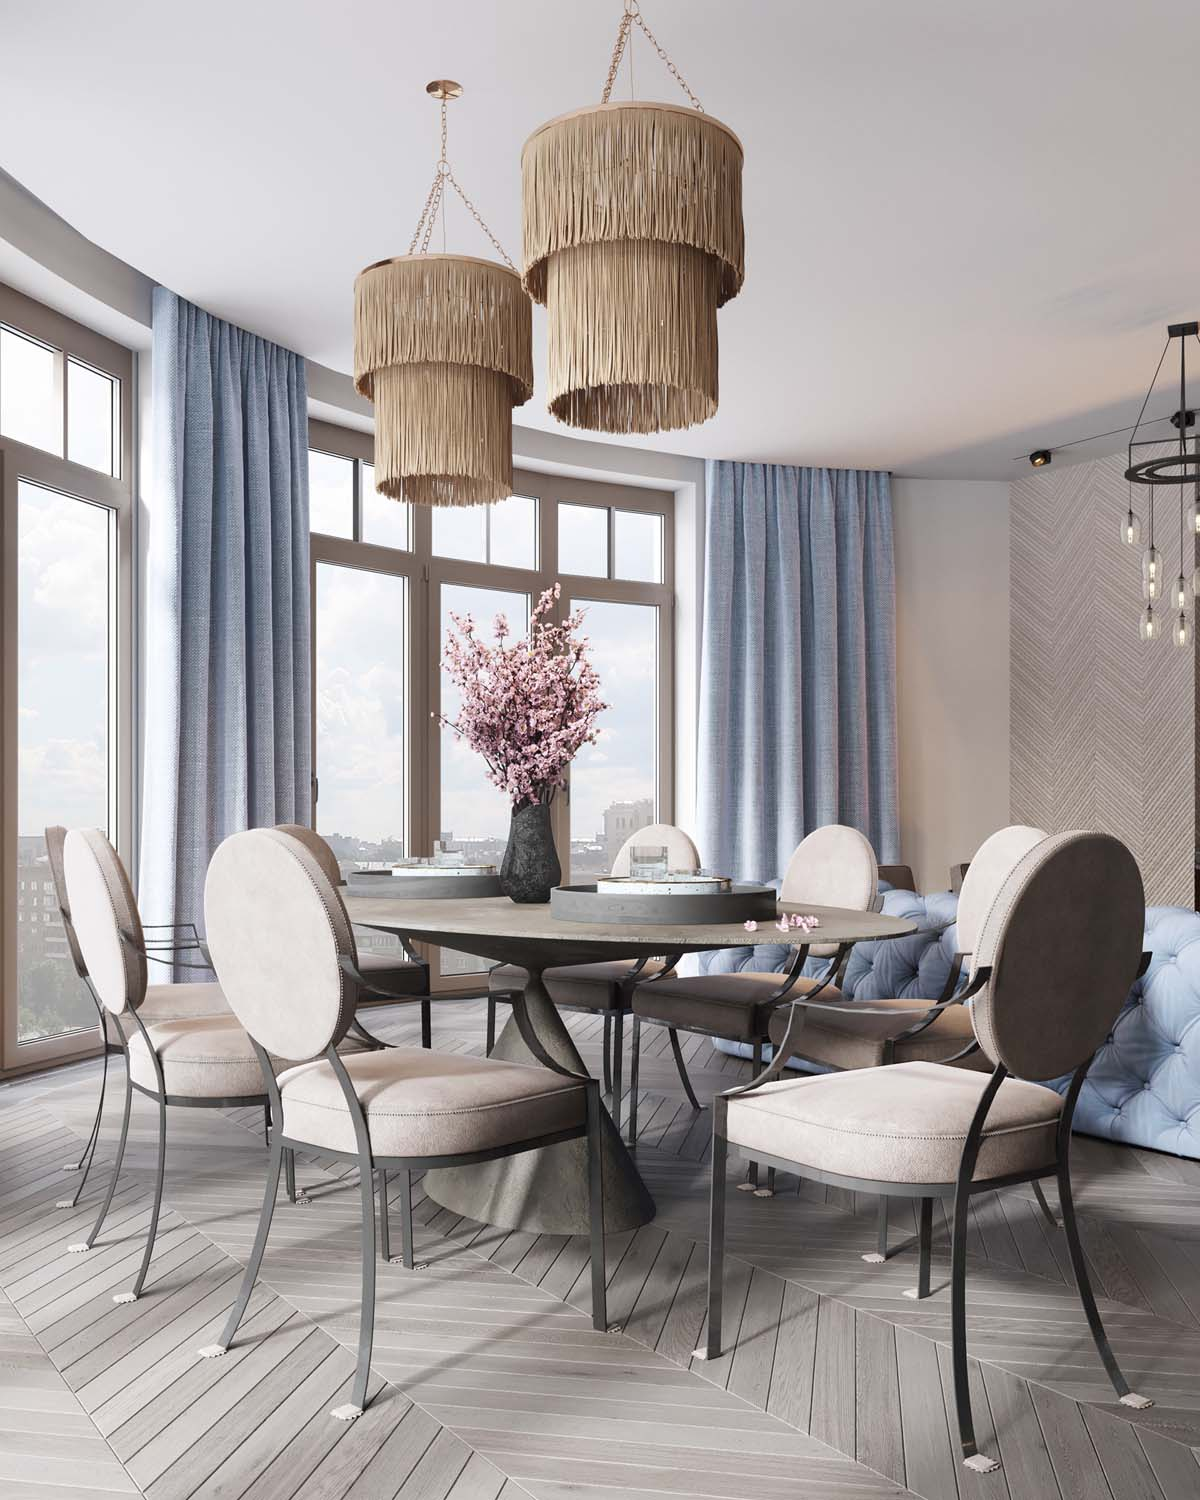 A Luxurious Home Interior with Pretty, Muted Pastel Colors images 5